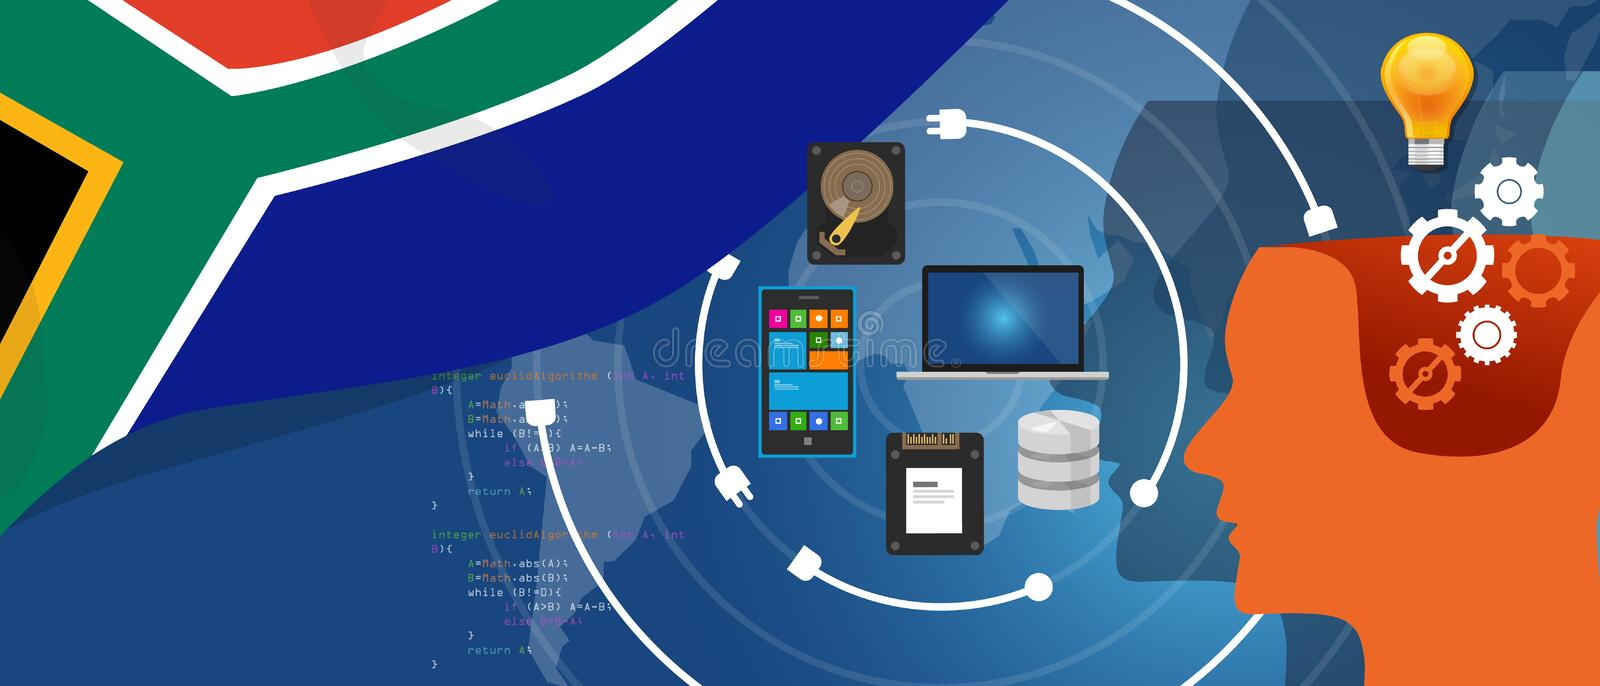 South Africa IT information technology digital infrastructure connecting business data via internet network using stock illustration